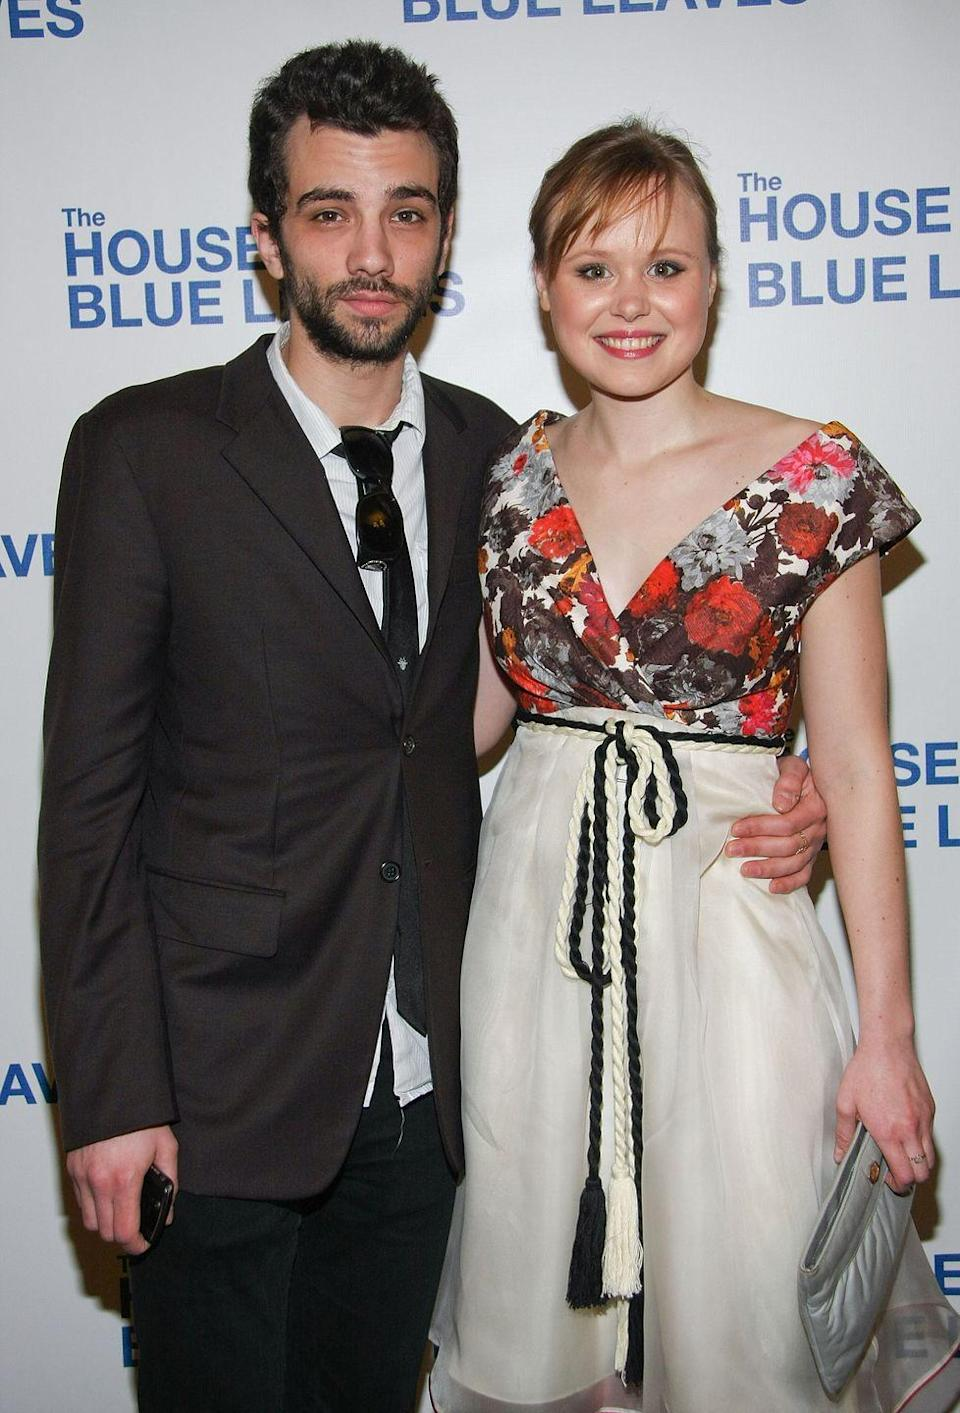 """<p>The Canadian stars called off their two-year engagement in March 2013. """"Alone again, naturally. Heartbroken,"""" Baruchel <a href=""""http://www.usmagazine.com/celebrity-news/news/alison-pill-jay-baruchel-call-off-engagement-201343"""" rel=""""nofollow noopener"""" target=""""_blank"""" data-ylk=""""slk:wrote in a Twitter message"""" class=""""link rapid-noclick-resp"""">wrote in a Twitter message</a> that he later deleted. """"I won't be on twitter for awhile gang. Getting dumped rules.""""</p>"""